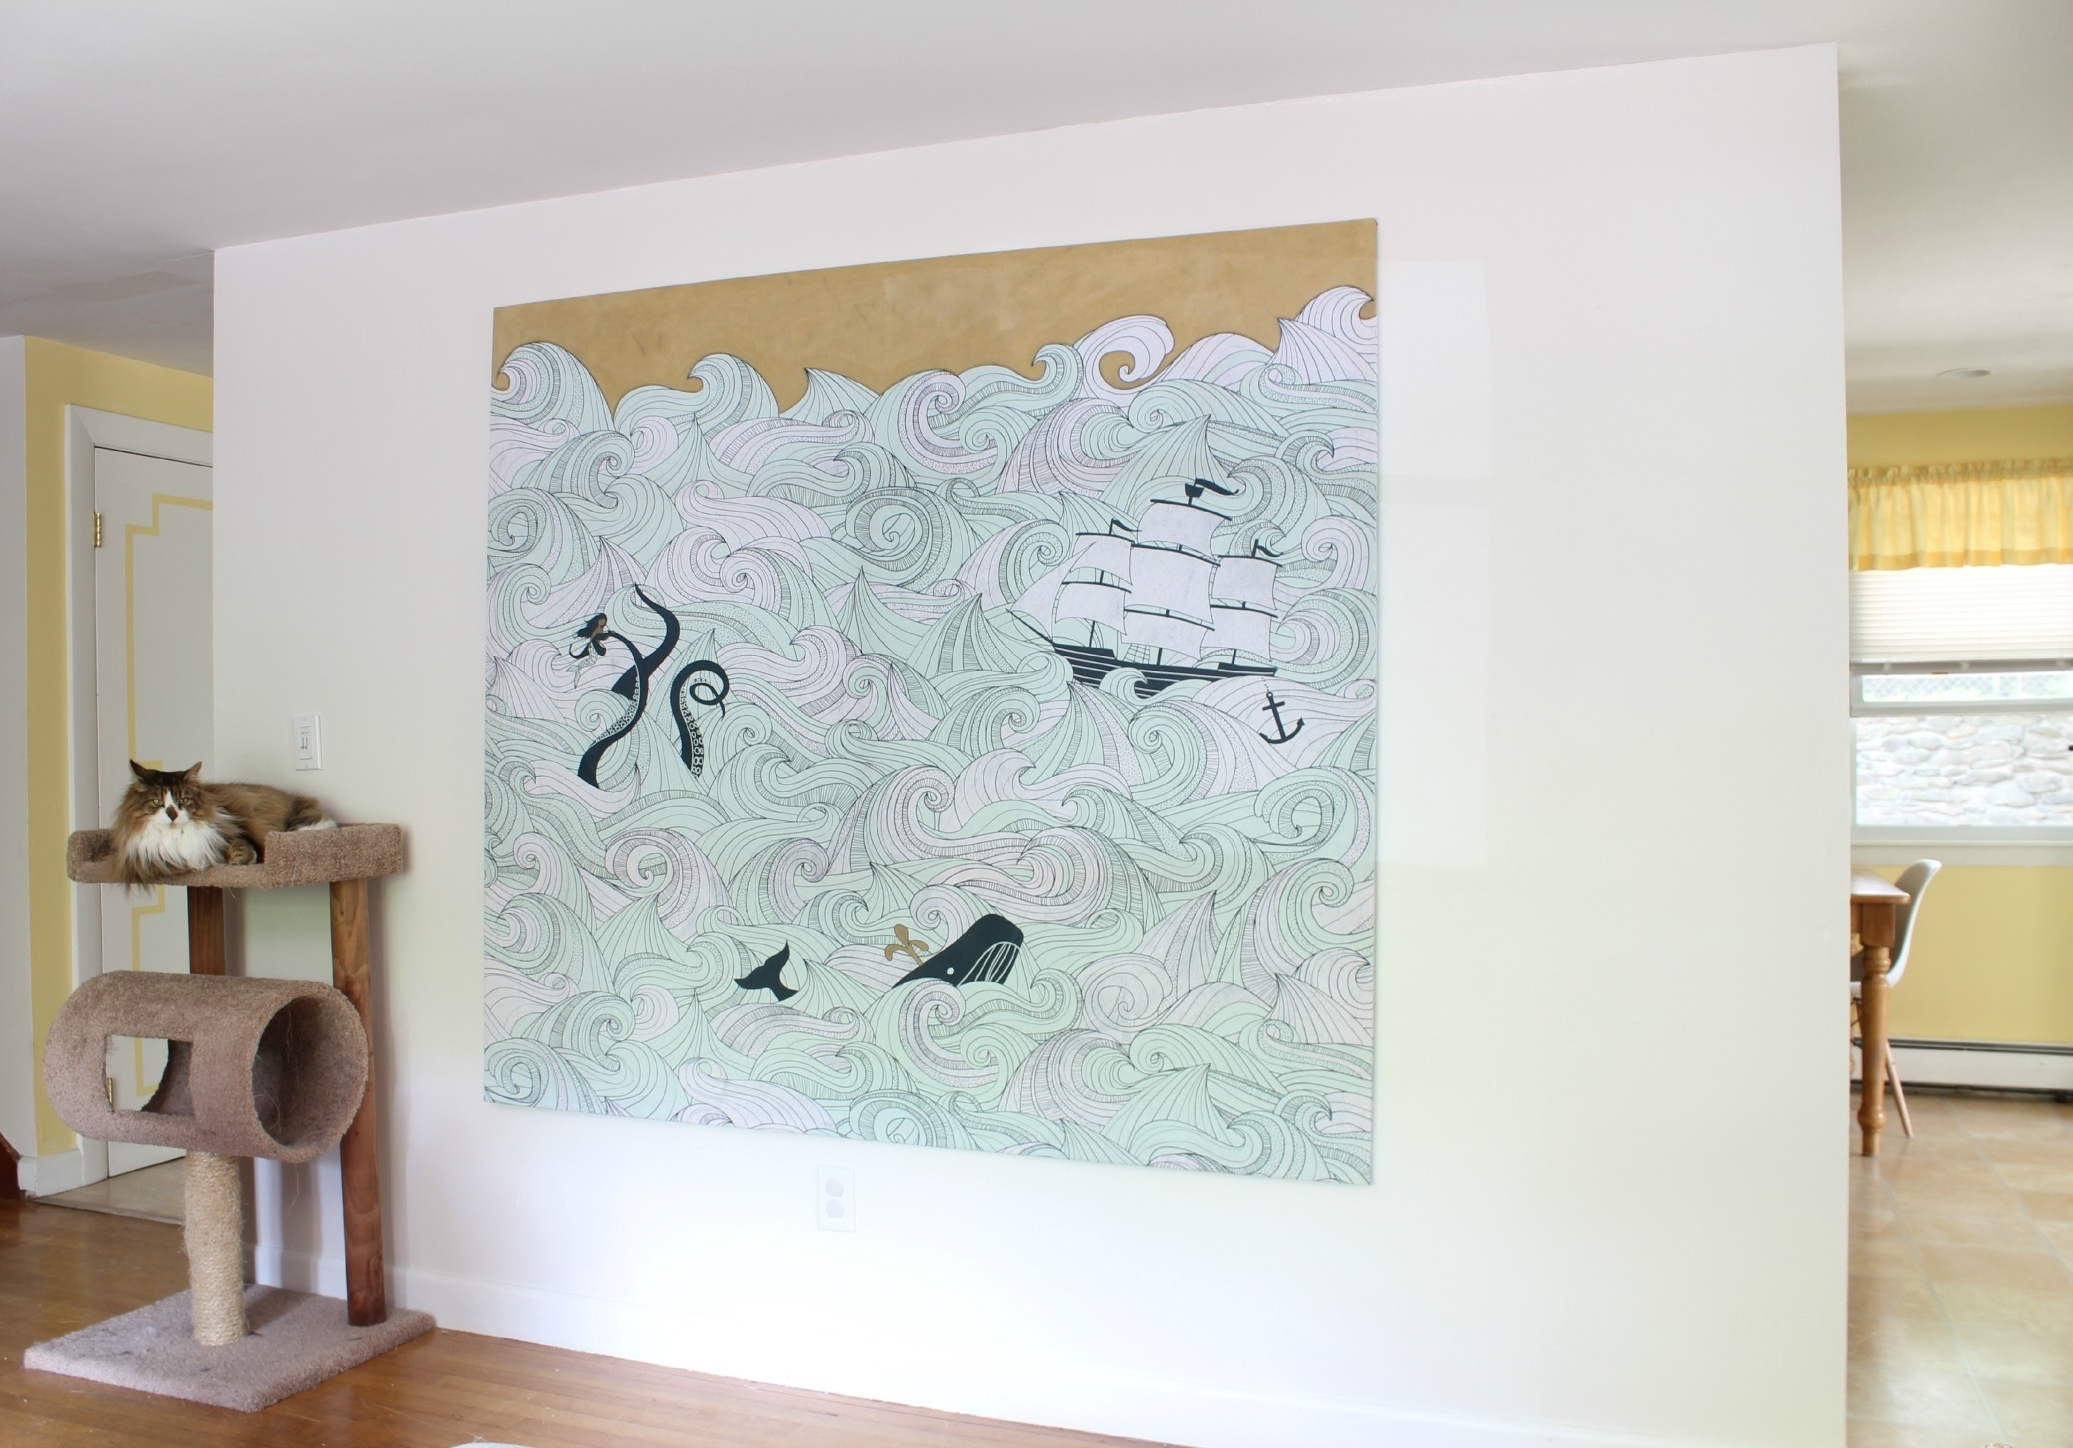 Latest Homemade Wall Art With Fabric Intended For Stunning Wall Art Design Ideas Gallery – Liltigertoo (View 10 of 15)